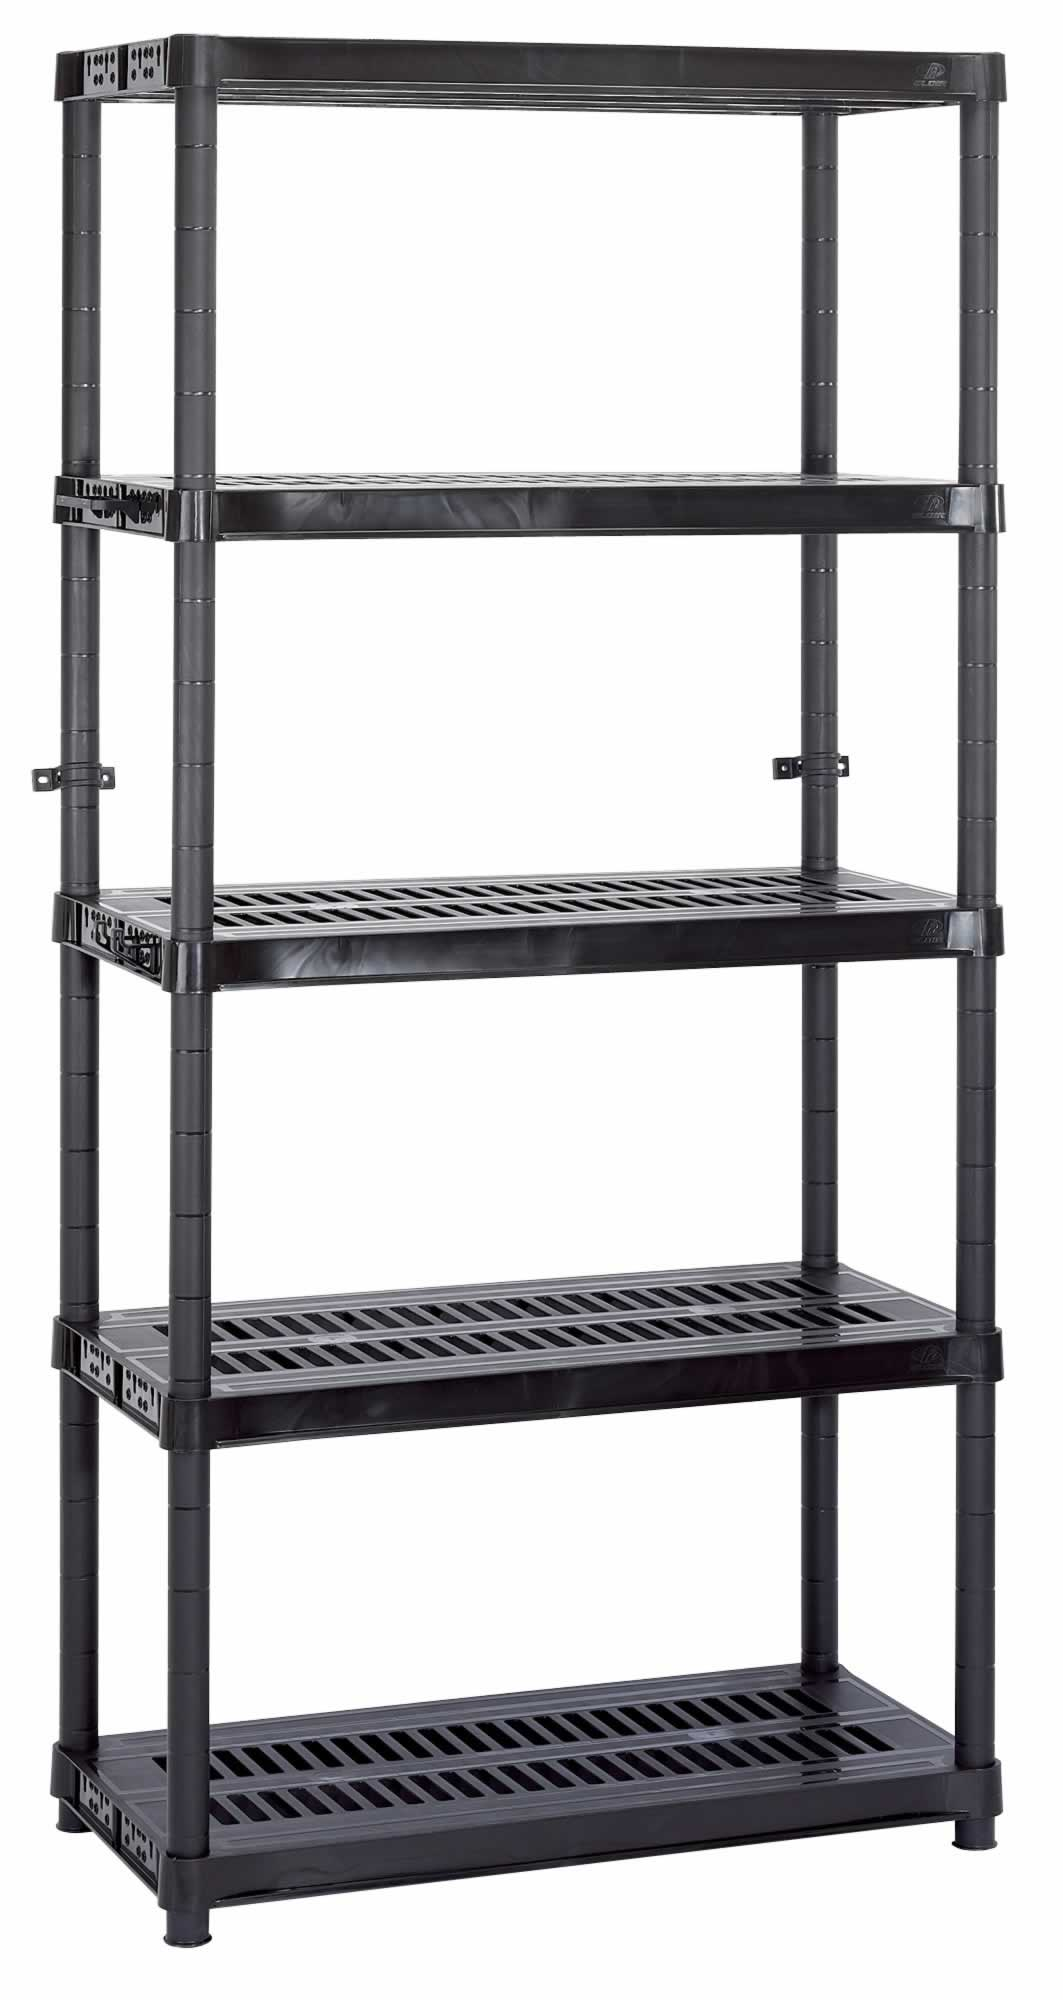 expert heavy duty plastic shelving unit five shelves l910 x w450 x h1830mm. Black Bedroom Furniture Sets. Home Design Ideas